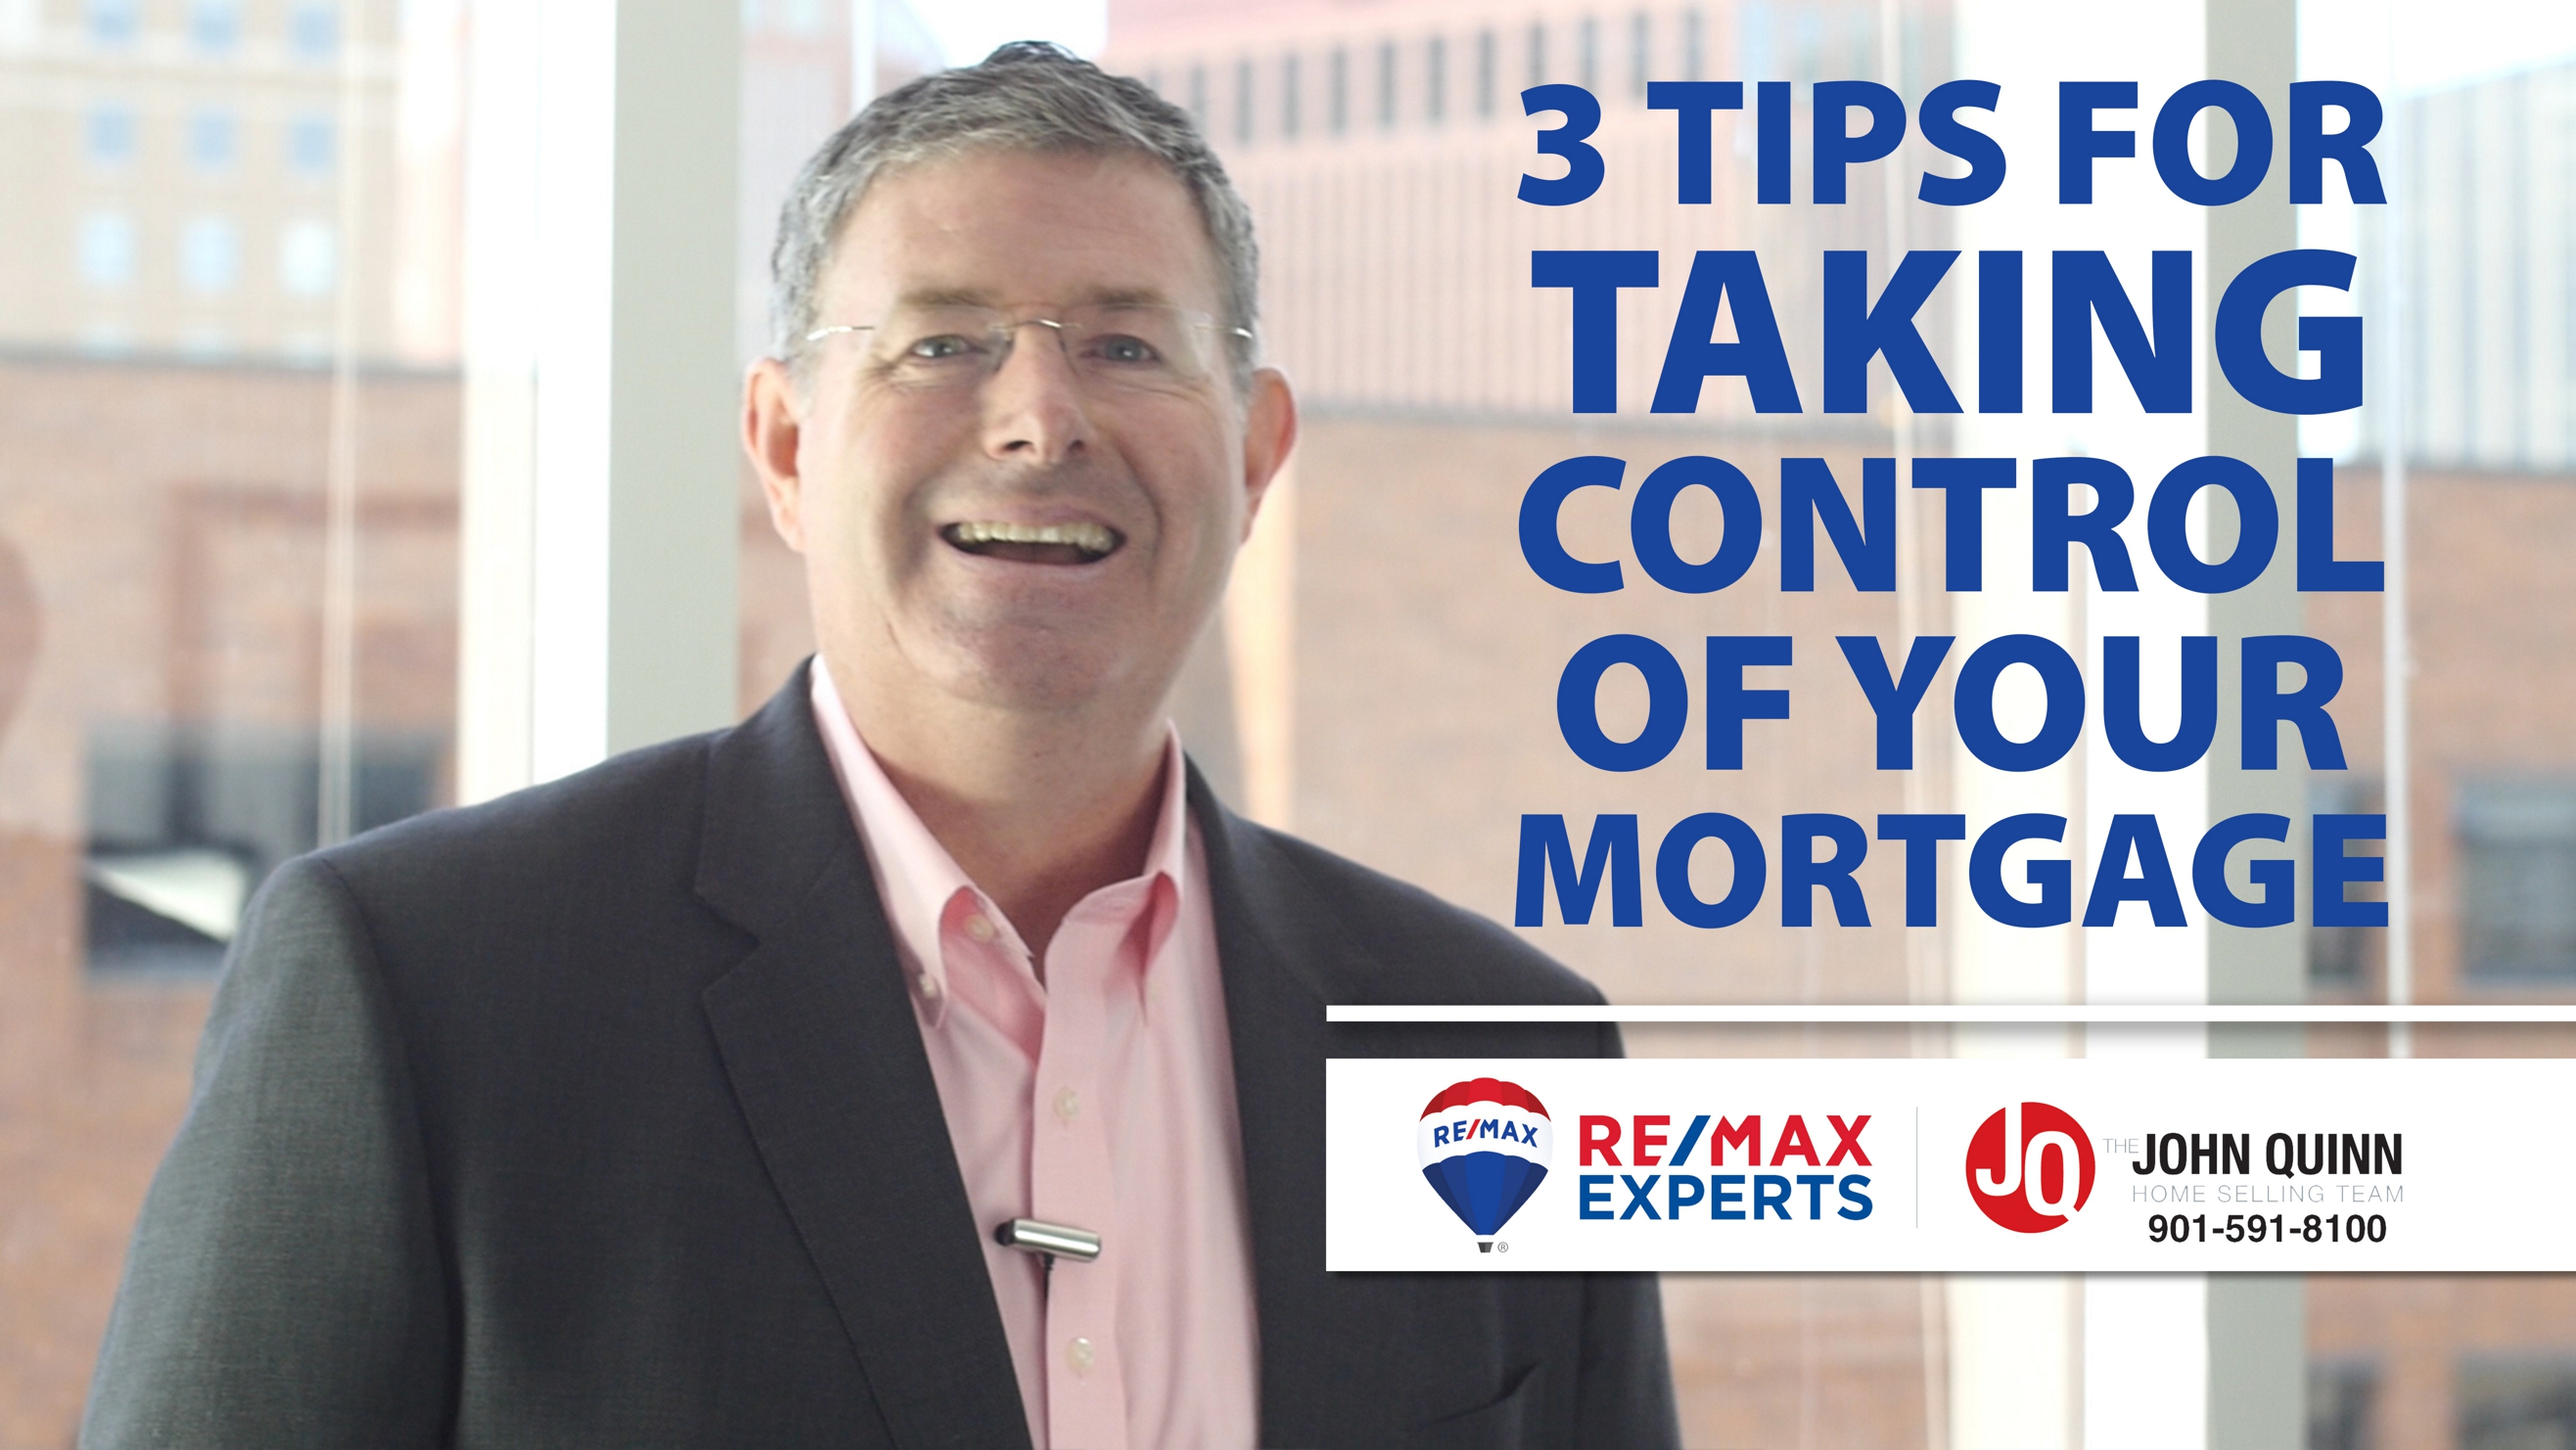 Ways to Eliminate Stress From Your Mortgage